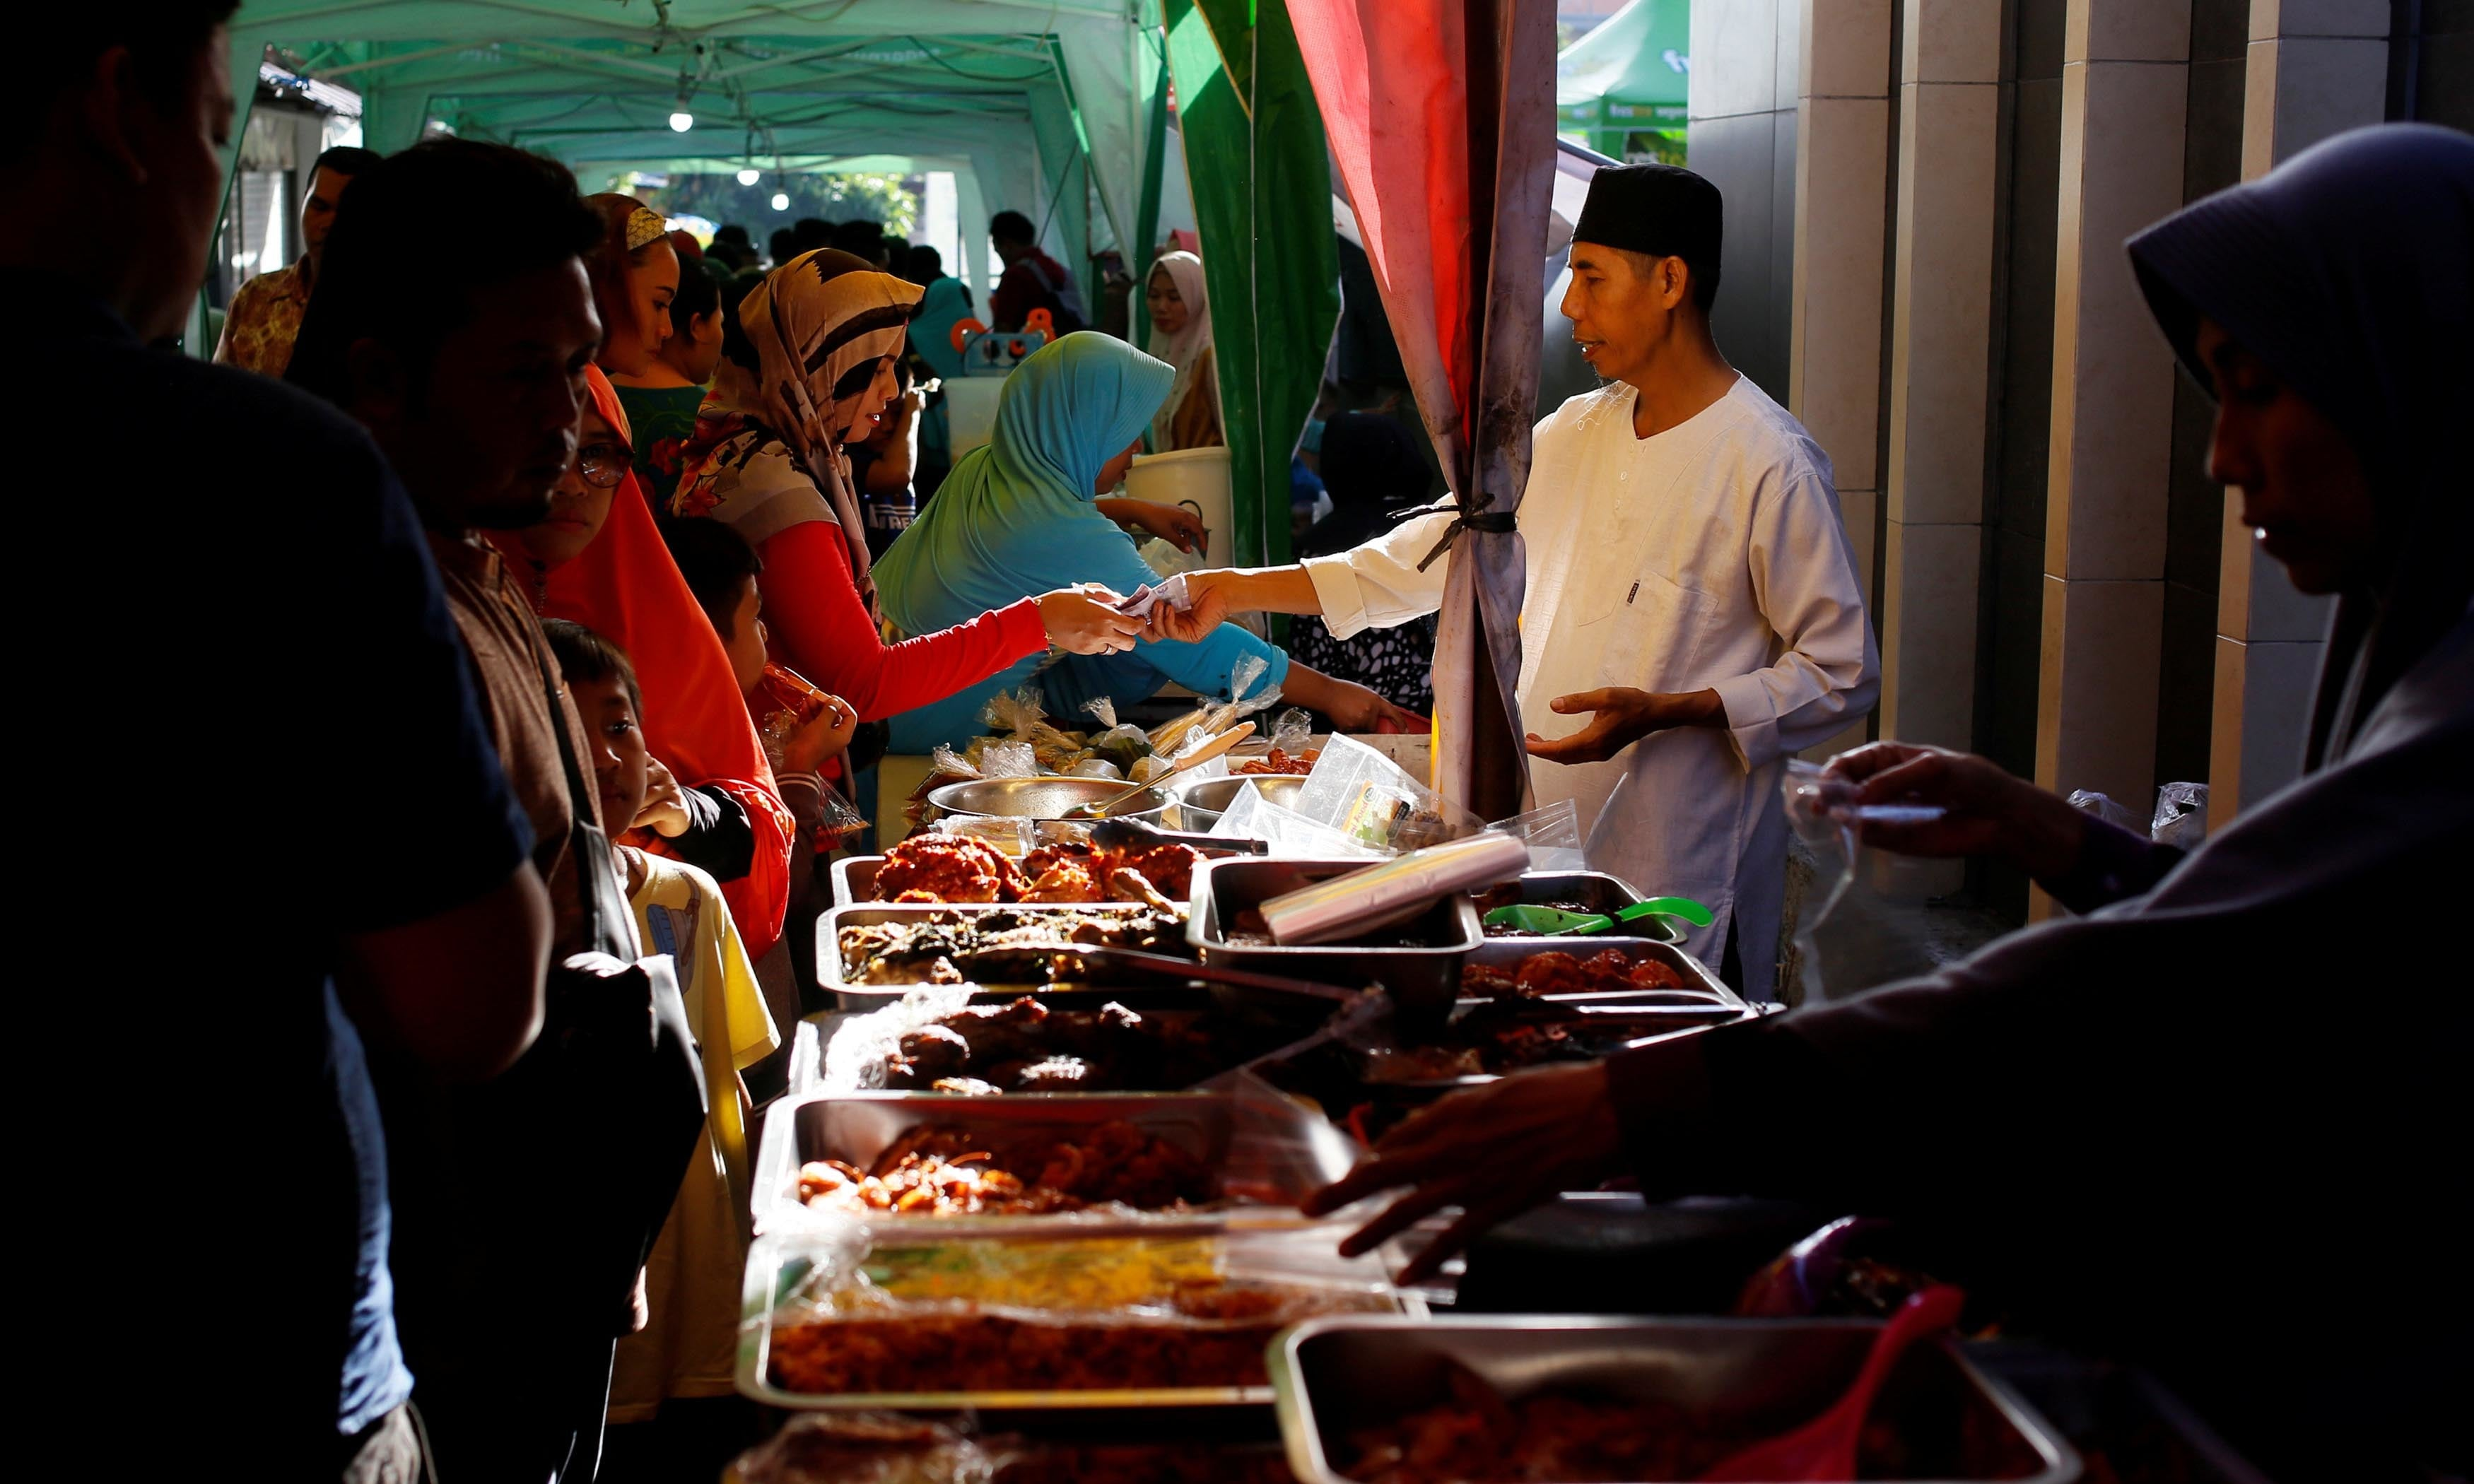 Indonesian Muslims buy food for iftar at a traditional food market during the first day of Ramazan in Denpasar, Bali, Indonesia. — Reuters